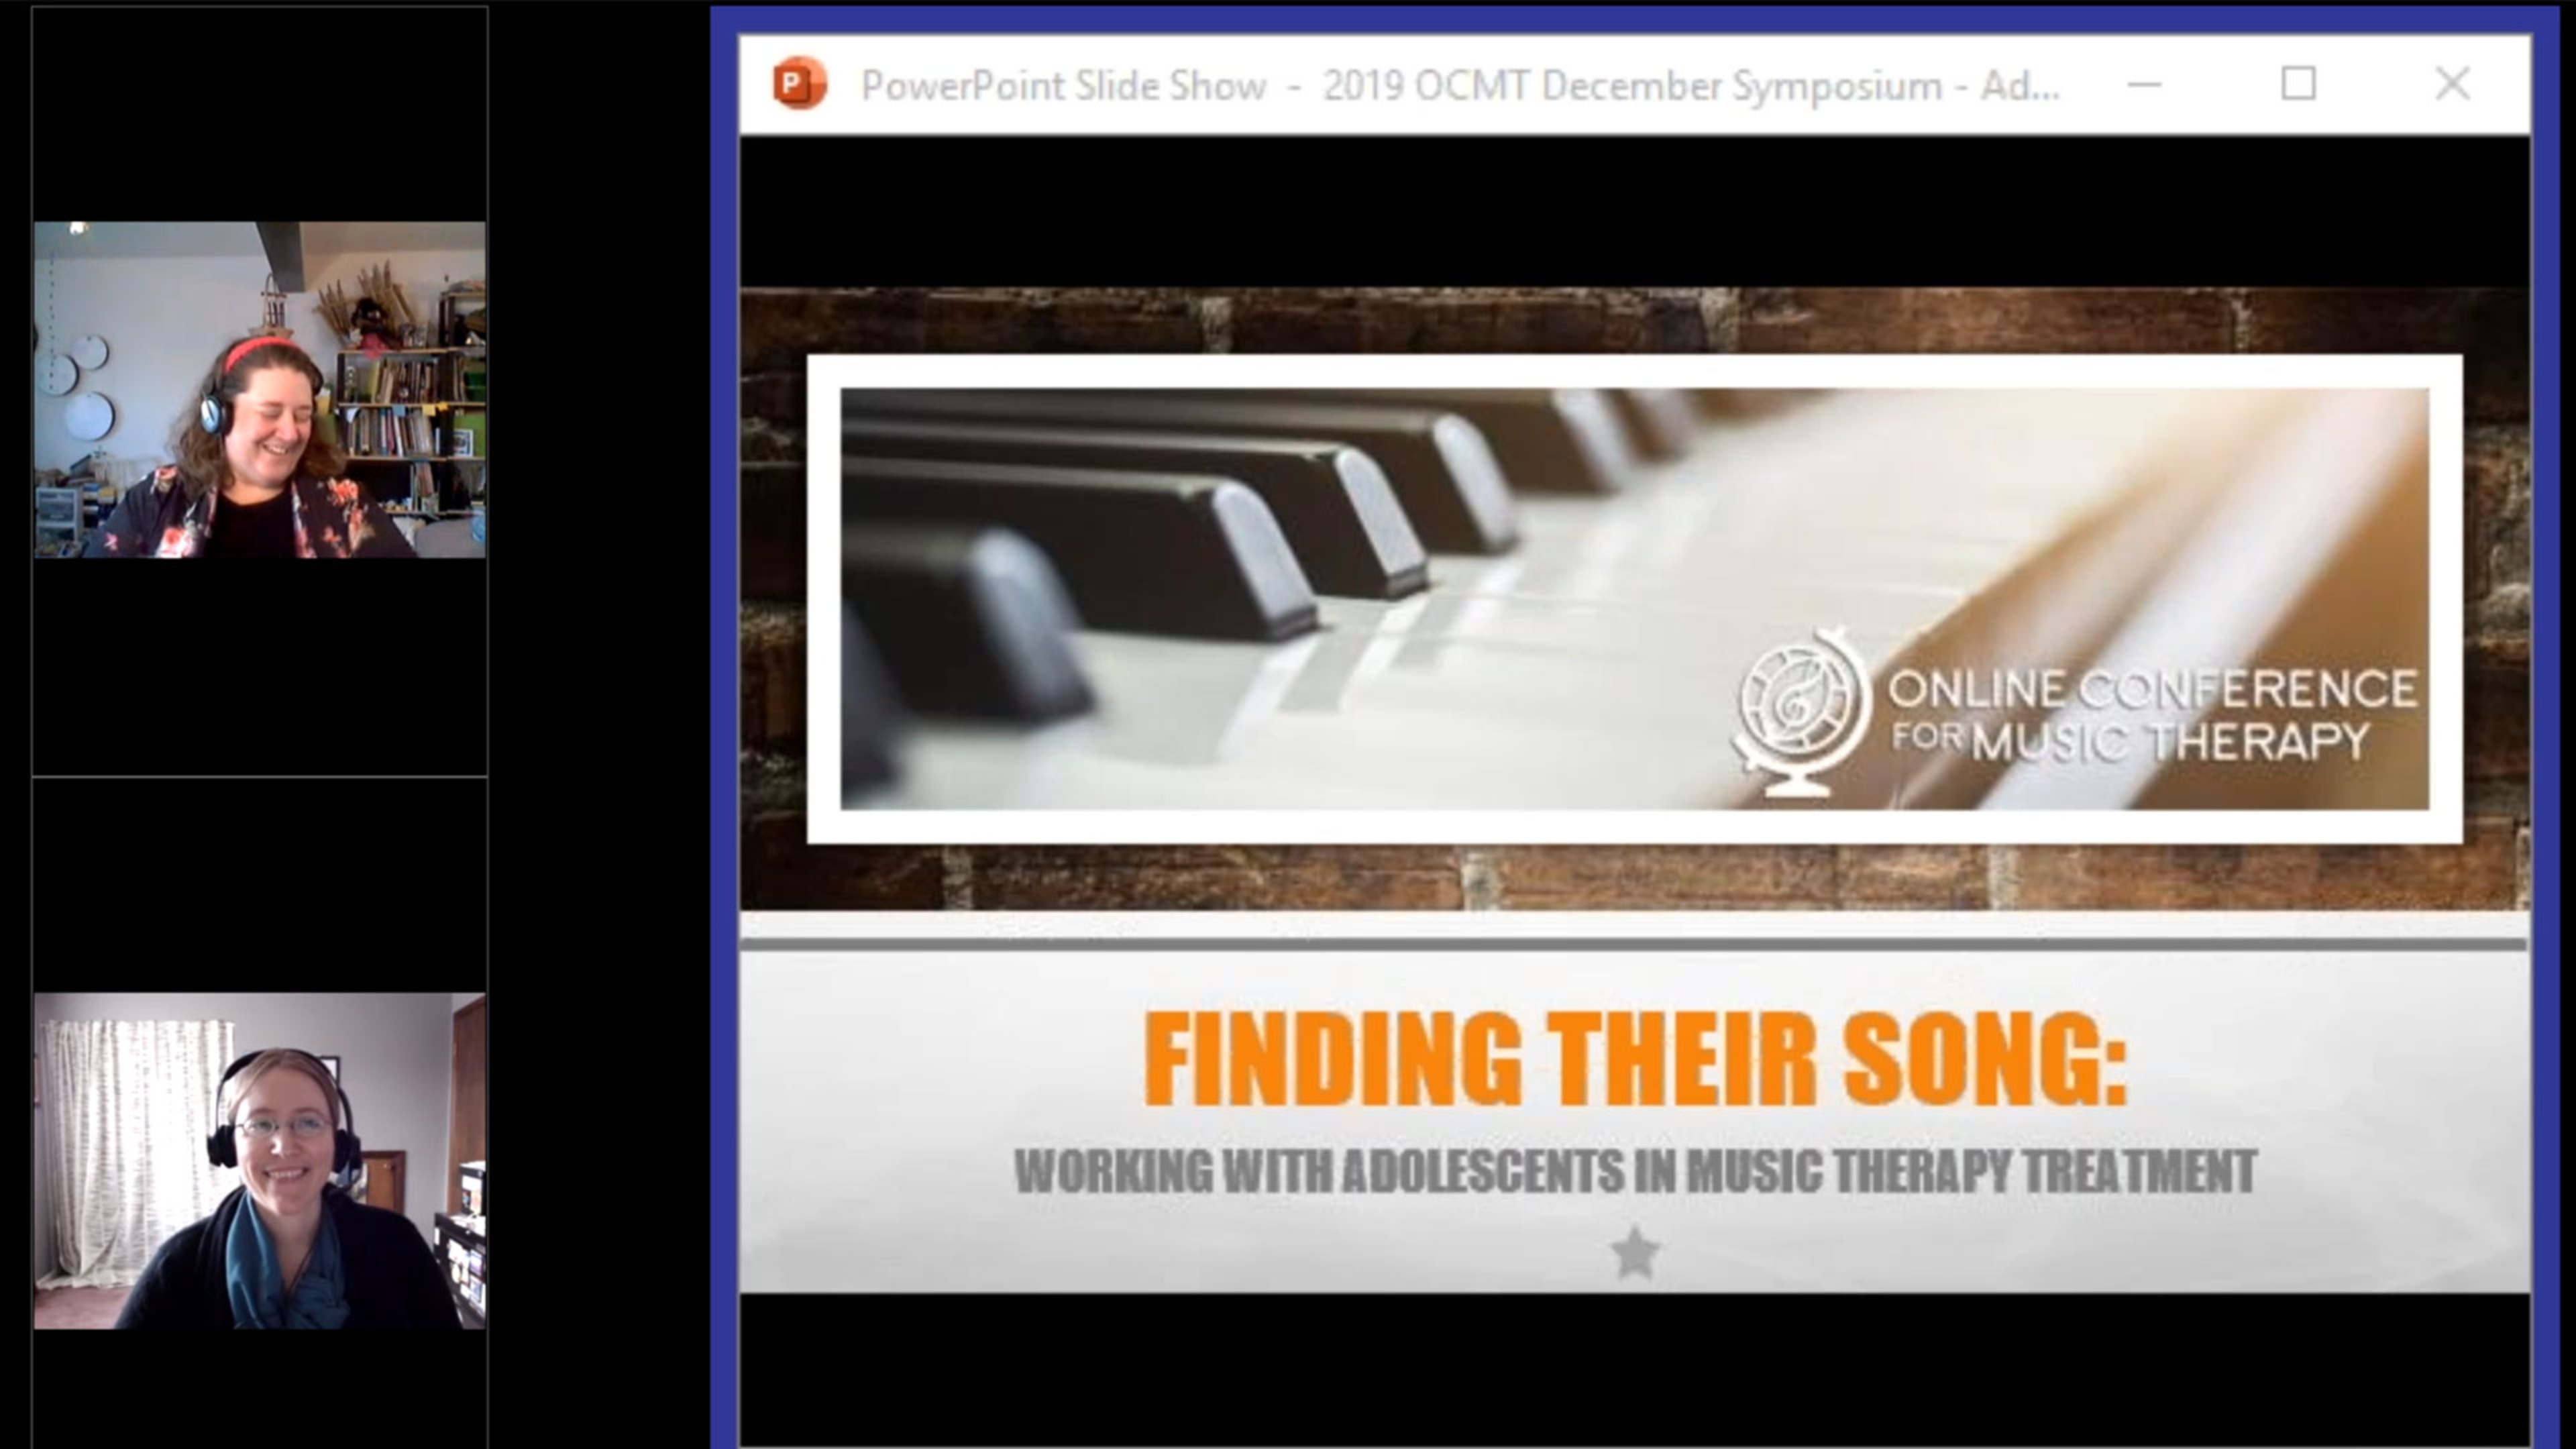 Finding Their Song: Working with Adolescents in Music Therapy Treatment